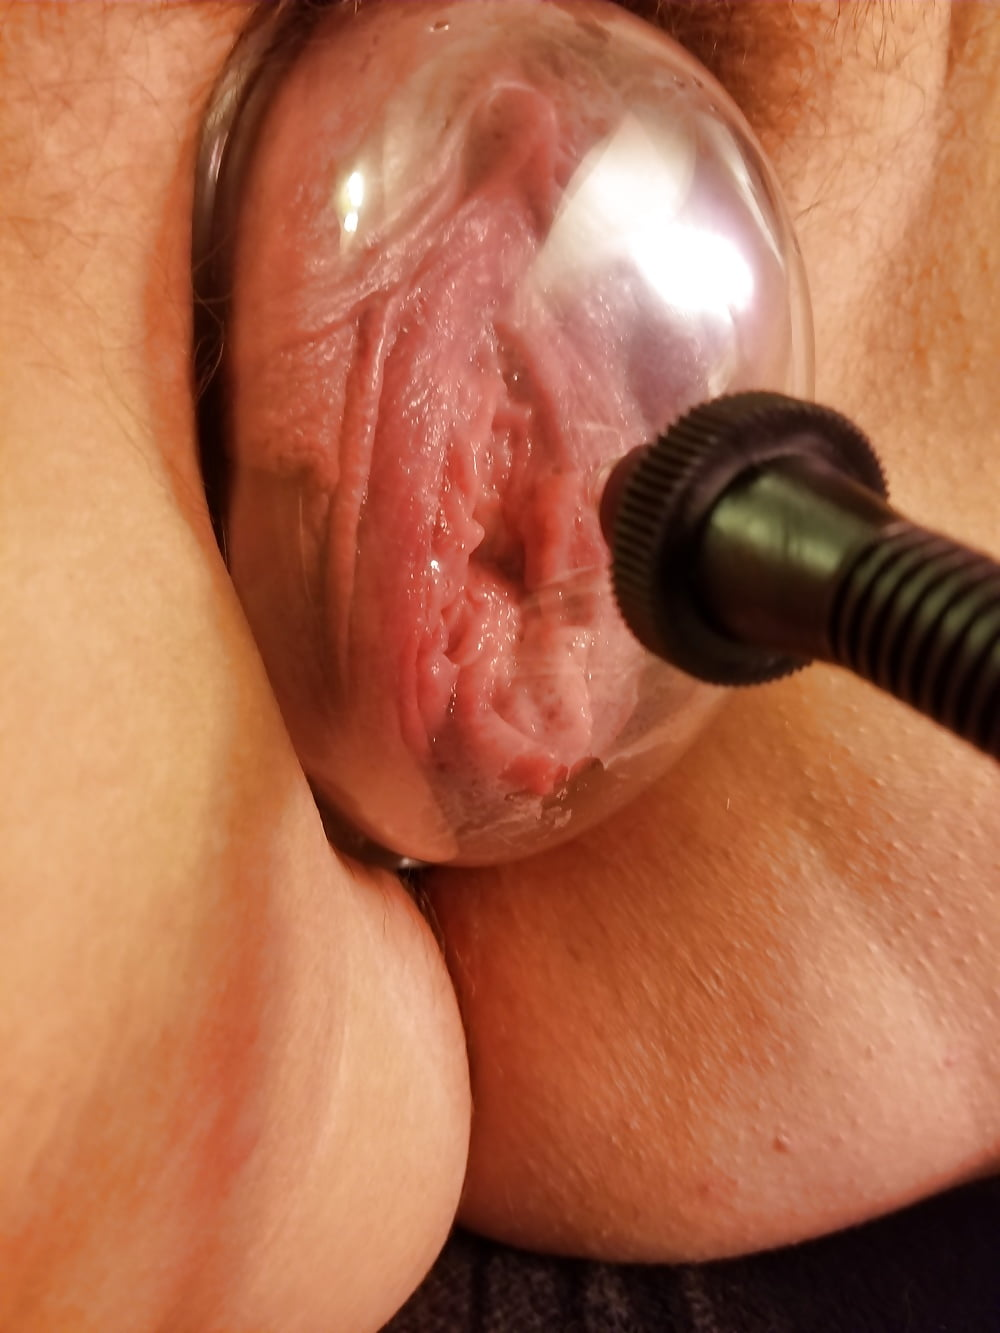 Pumped Cock User Uploaded Home Porn, Enjoy Our Great Collection